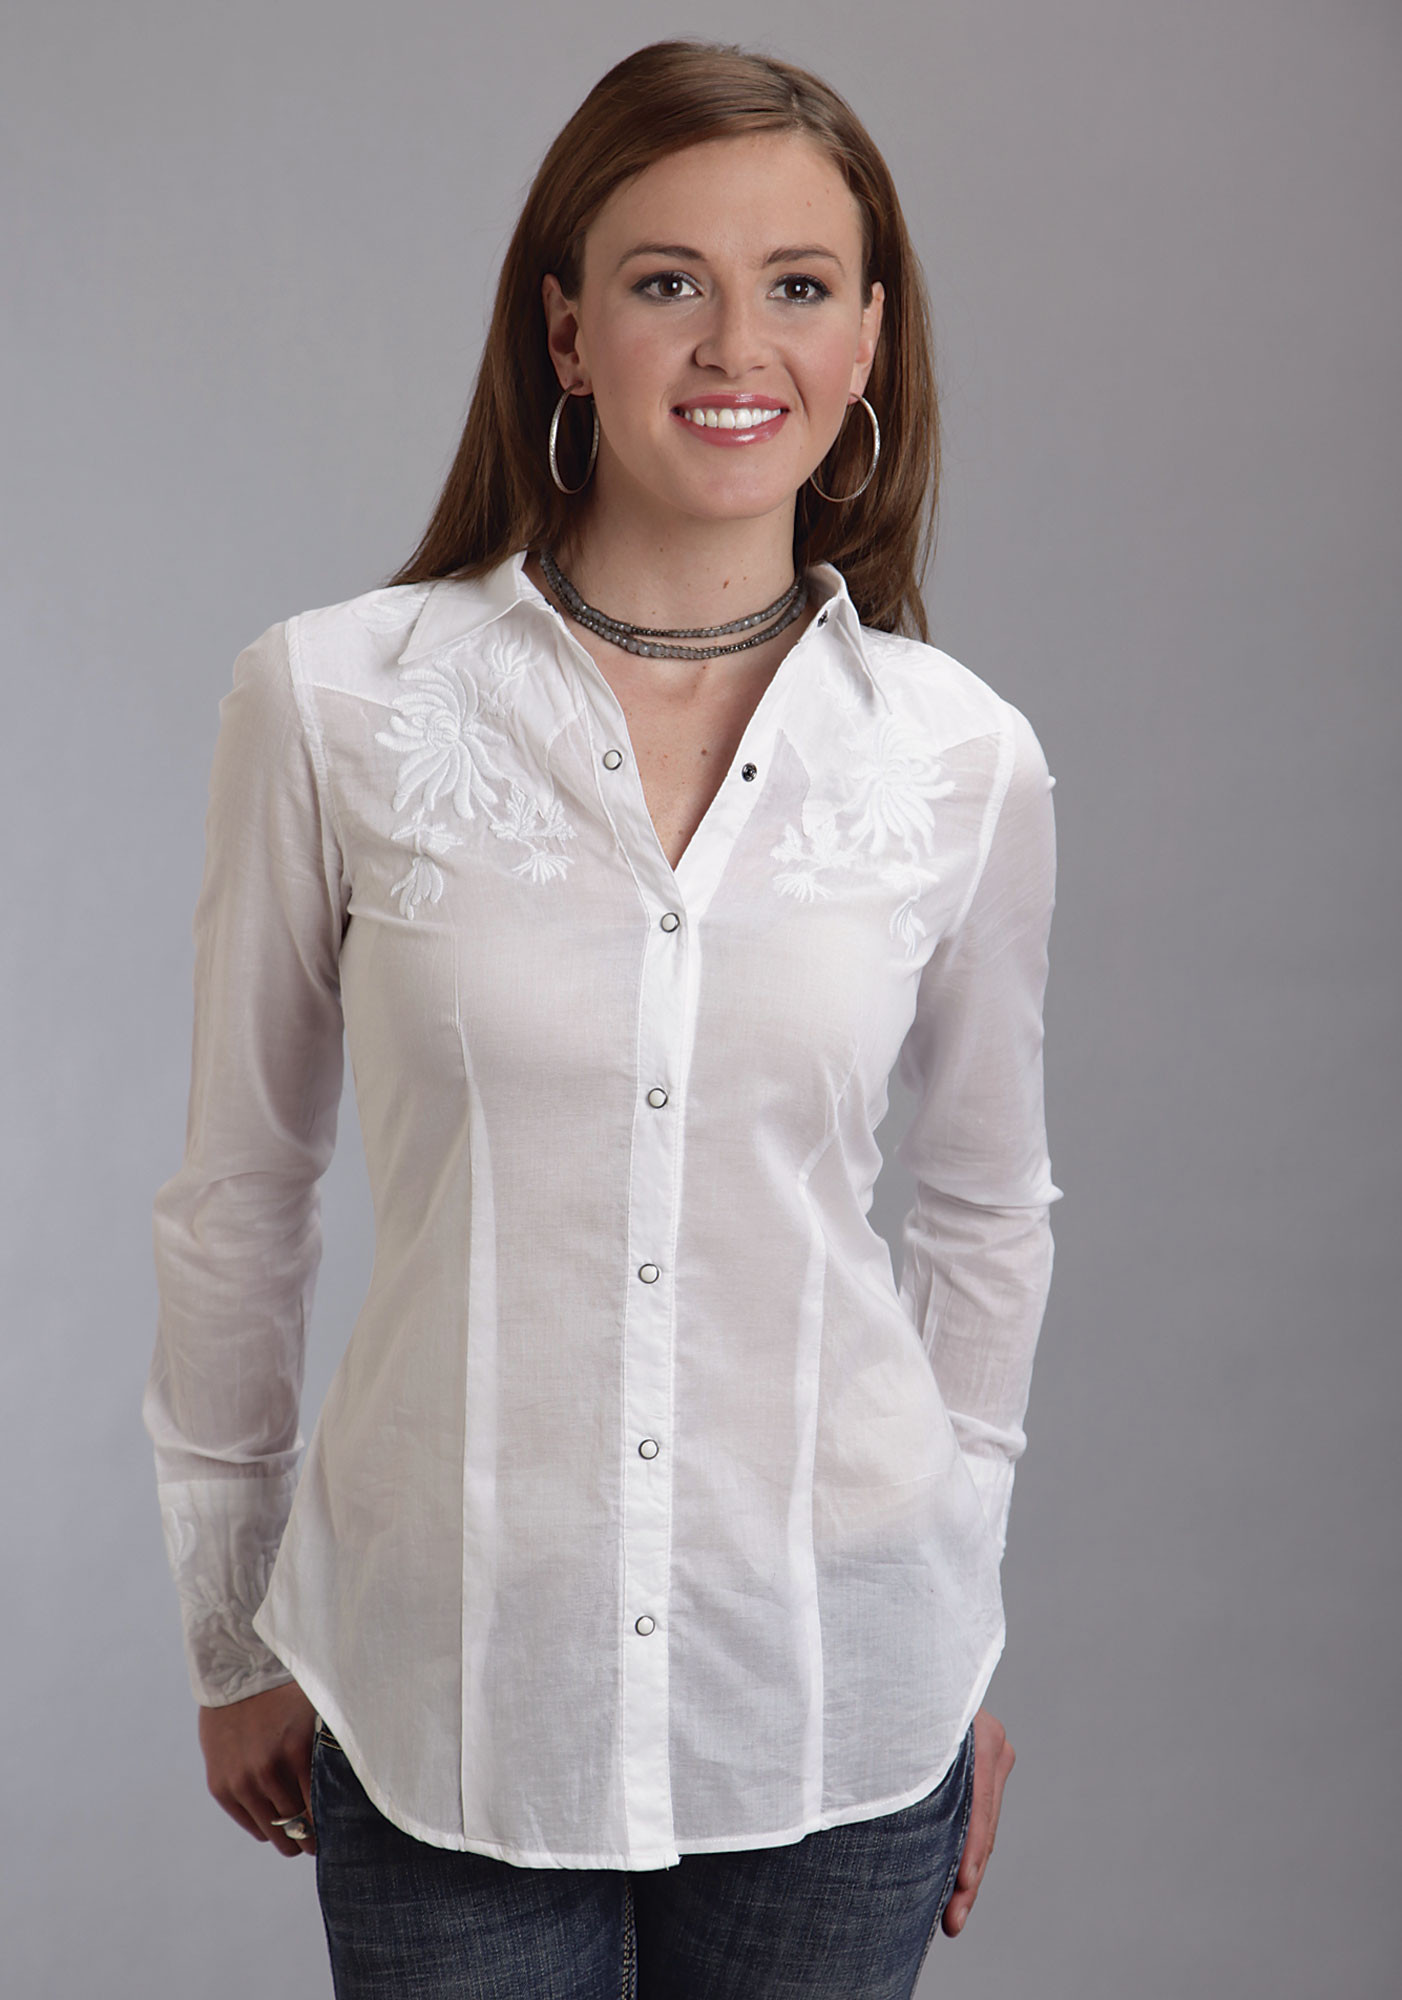 Stetson® Women's White Cotton Embroidered Long Sleeve Western Shirt